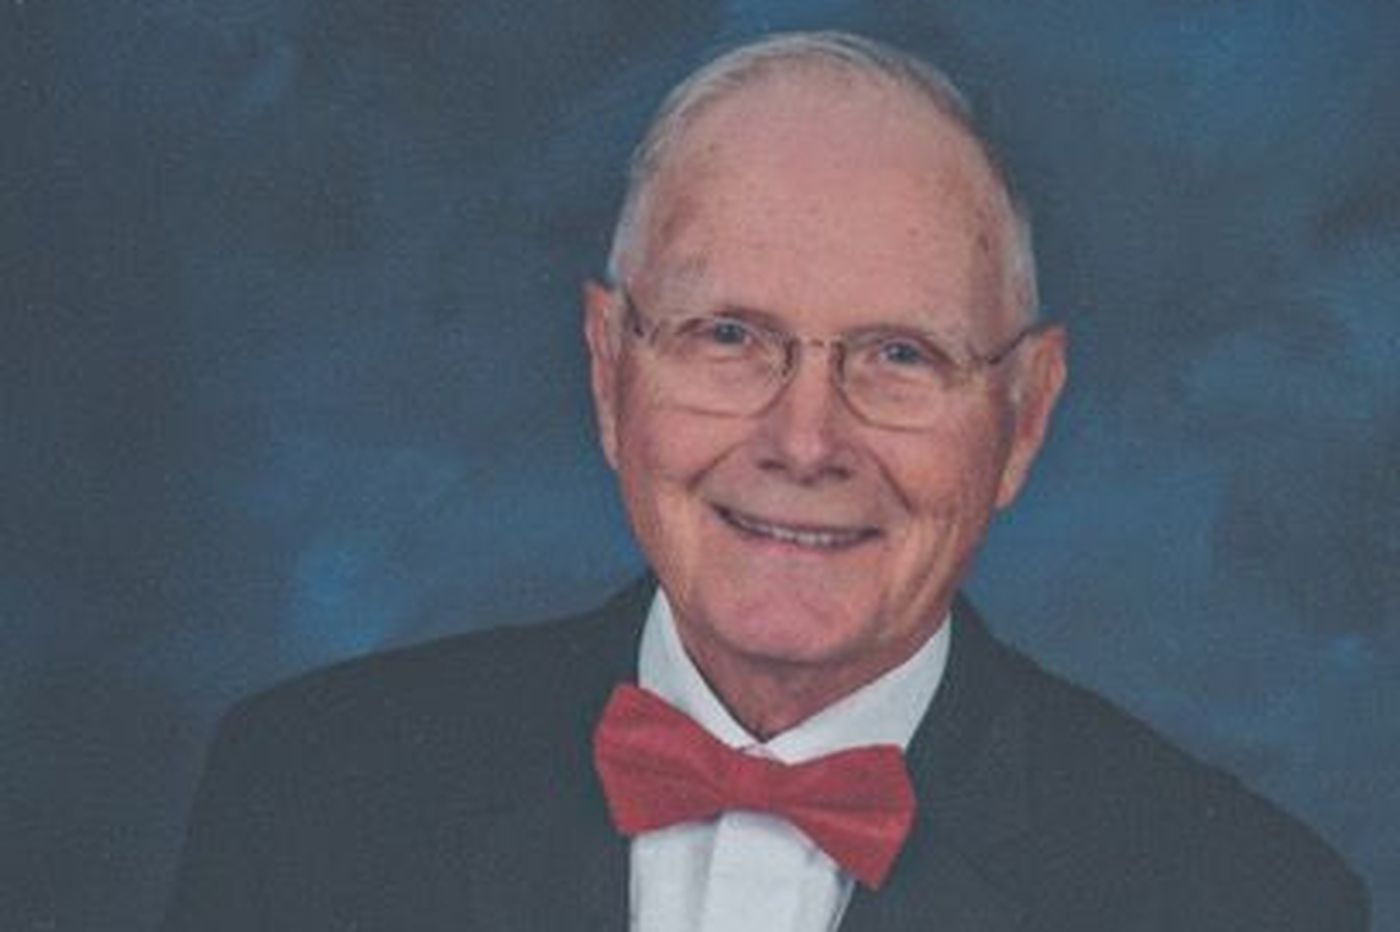 Edward Asplundh, local businessman, Air Force veteran, and health-care reformer, dies at 88